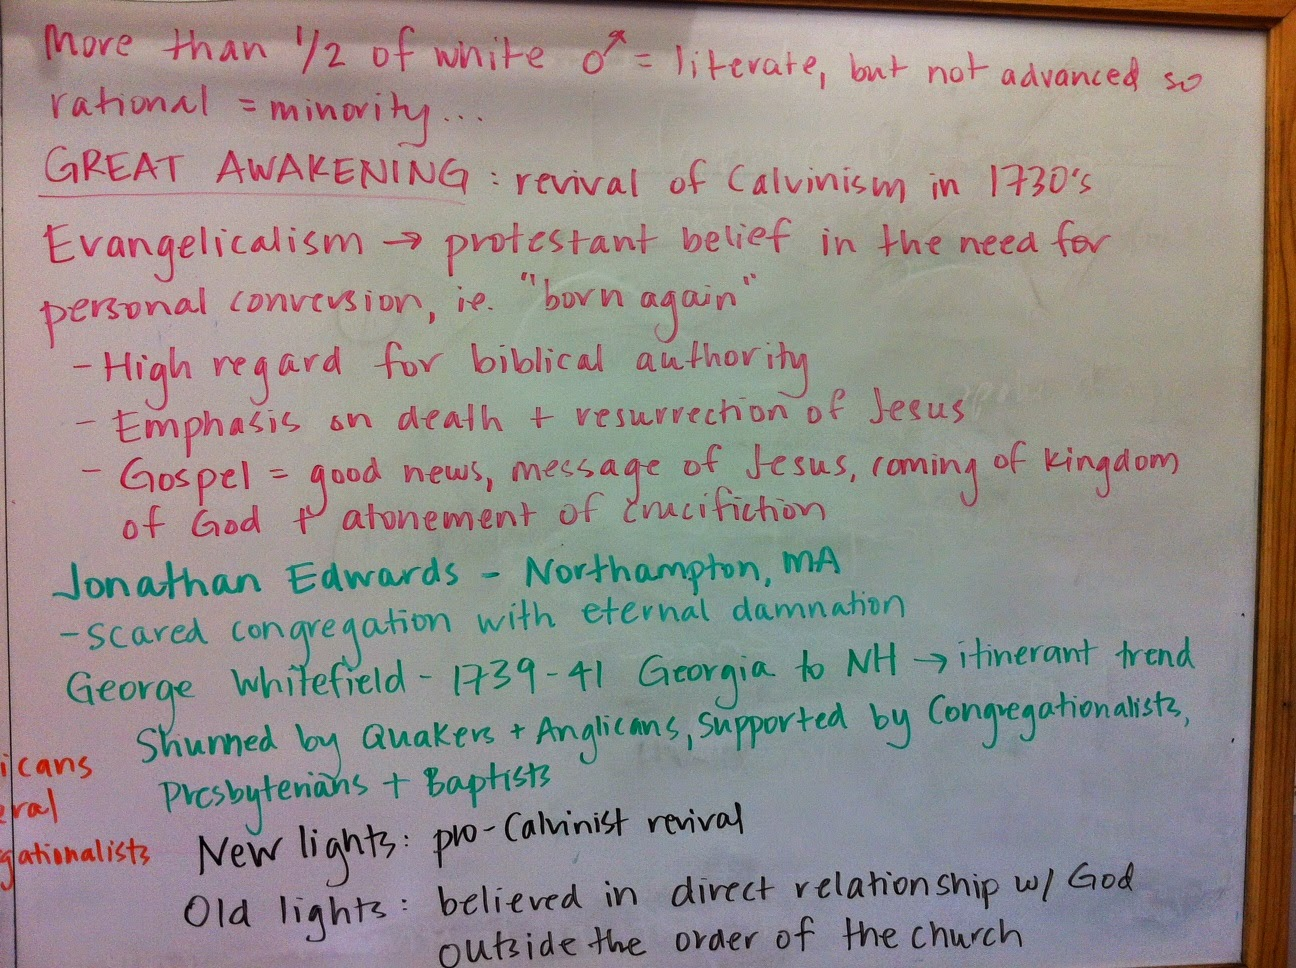 ap united states history 2014 2015 2014 here is the clip we watched on the great awakening in class in addition this the franklin excerpt on george whitefield and the sermon from jonathan